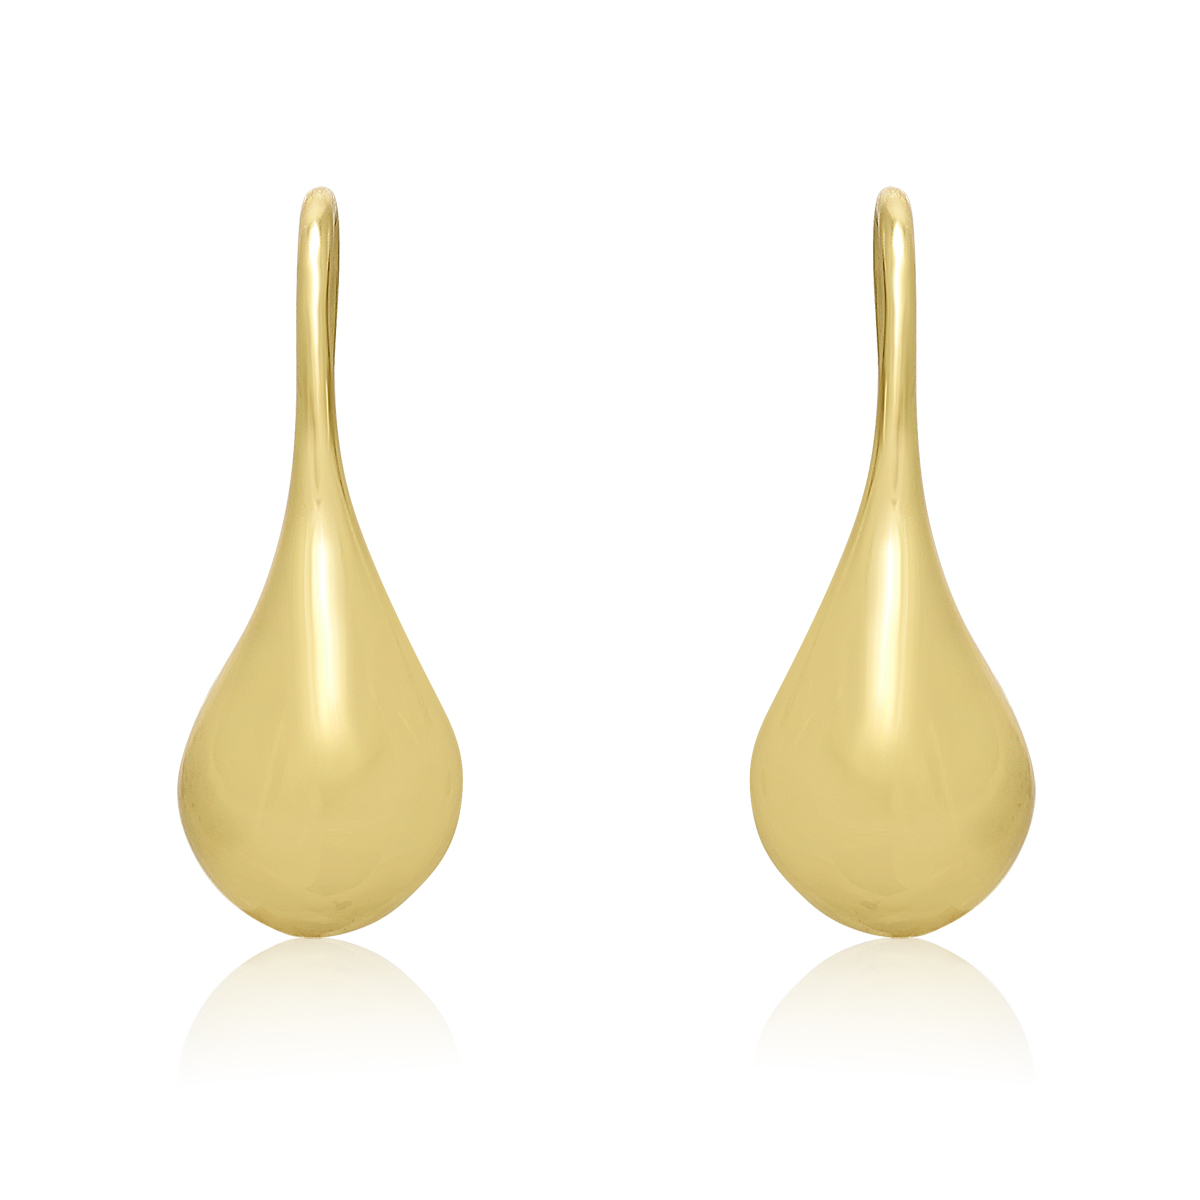 Gold Tone Teardrop Earrings, 1 2 Inch